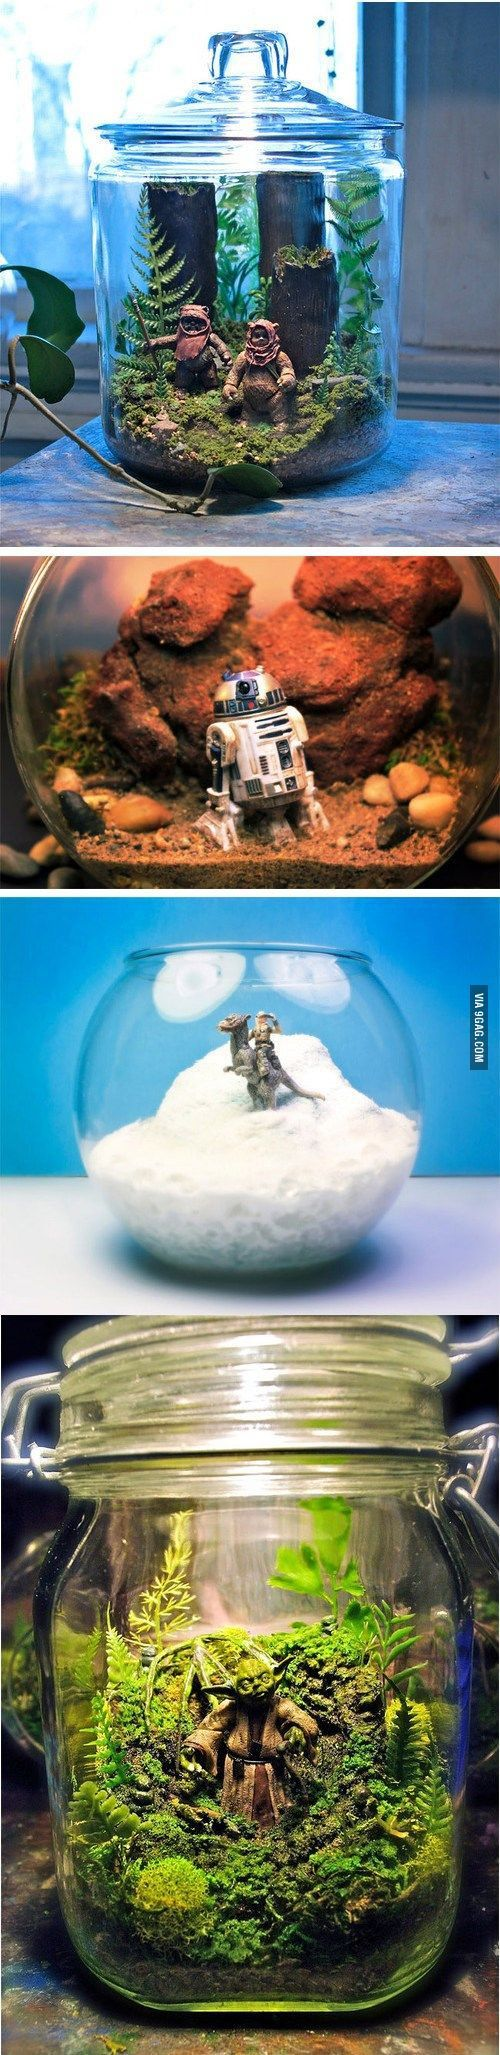 My next DIY project: Star Wars terrariums.make it trek & it's all good